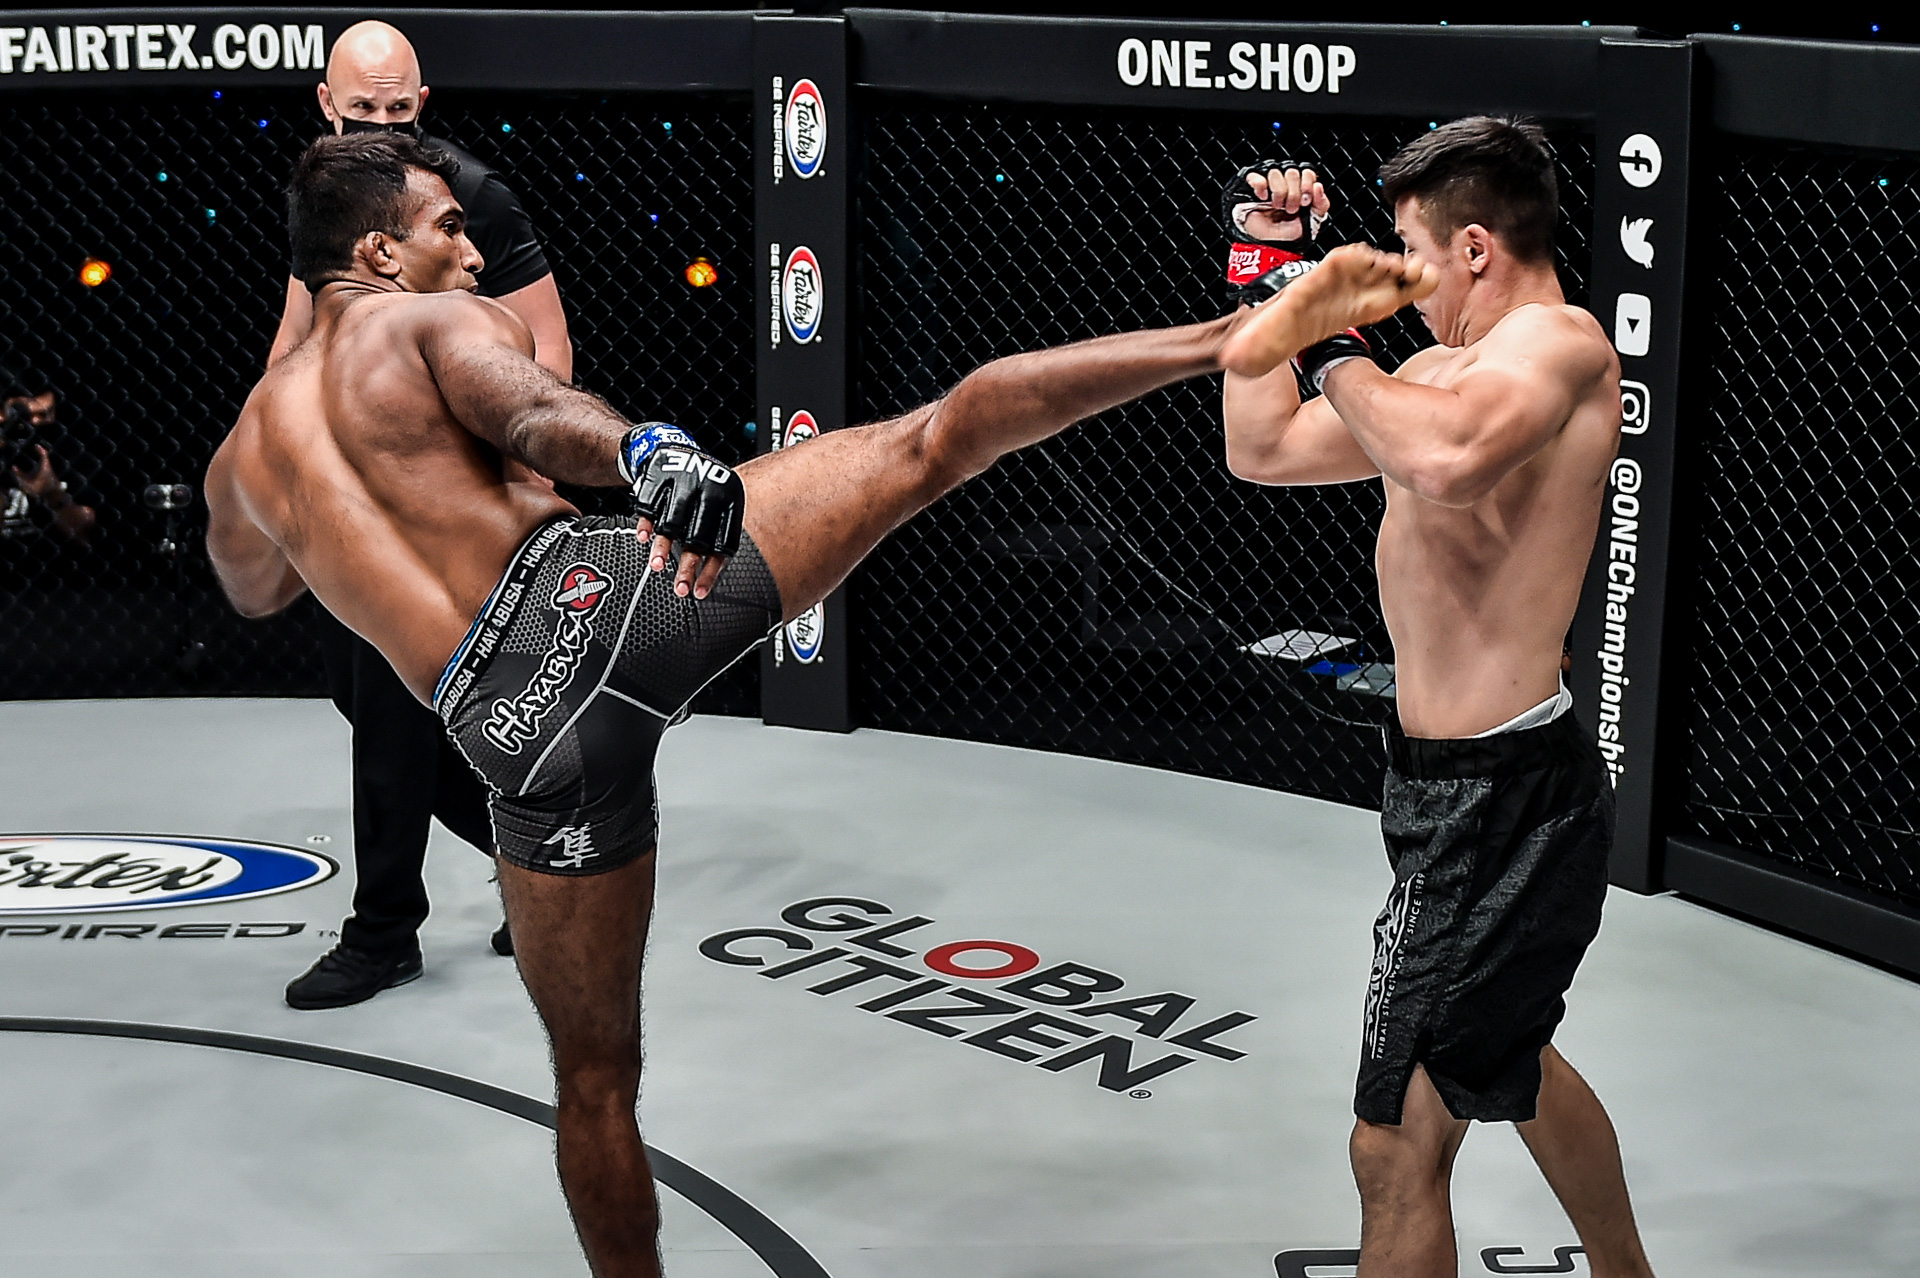 Pictures from the fight between Rahul Raju and Otgonbaatar Nergui at ONE: BATTLEGROUND II